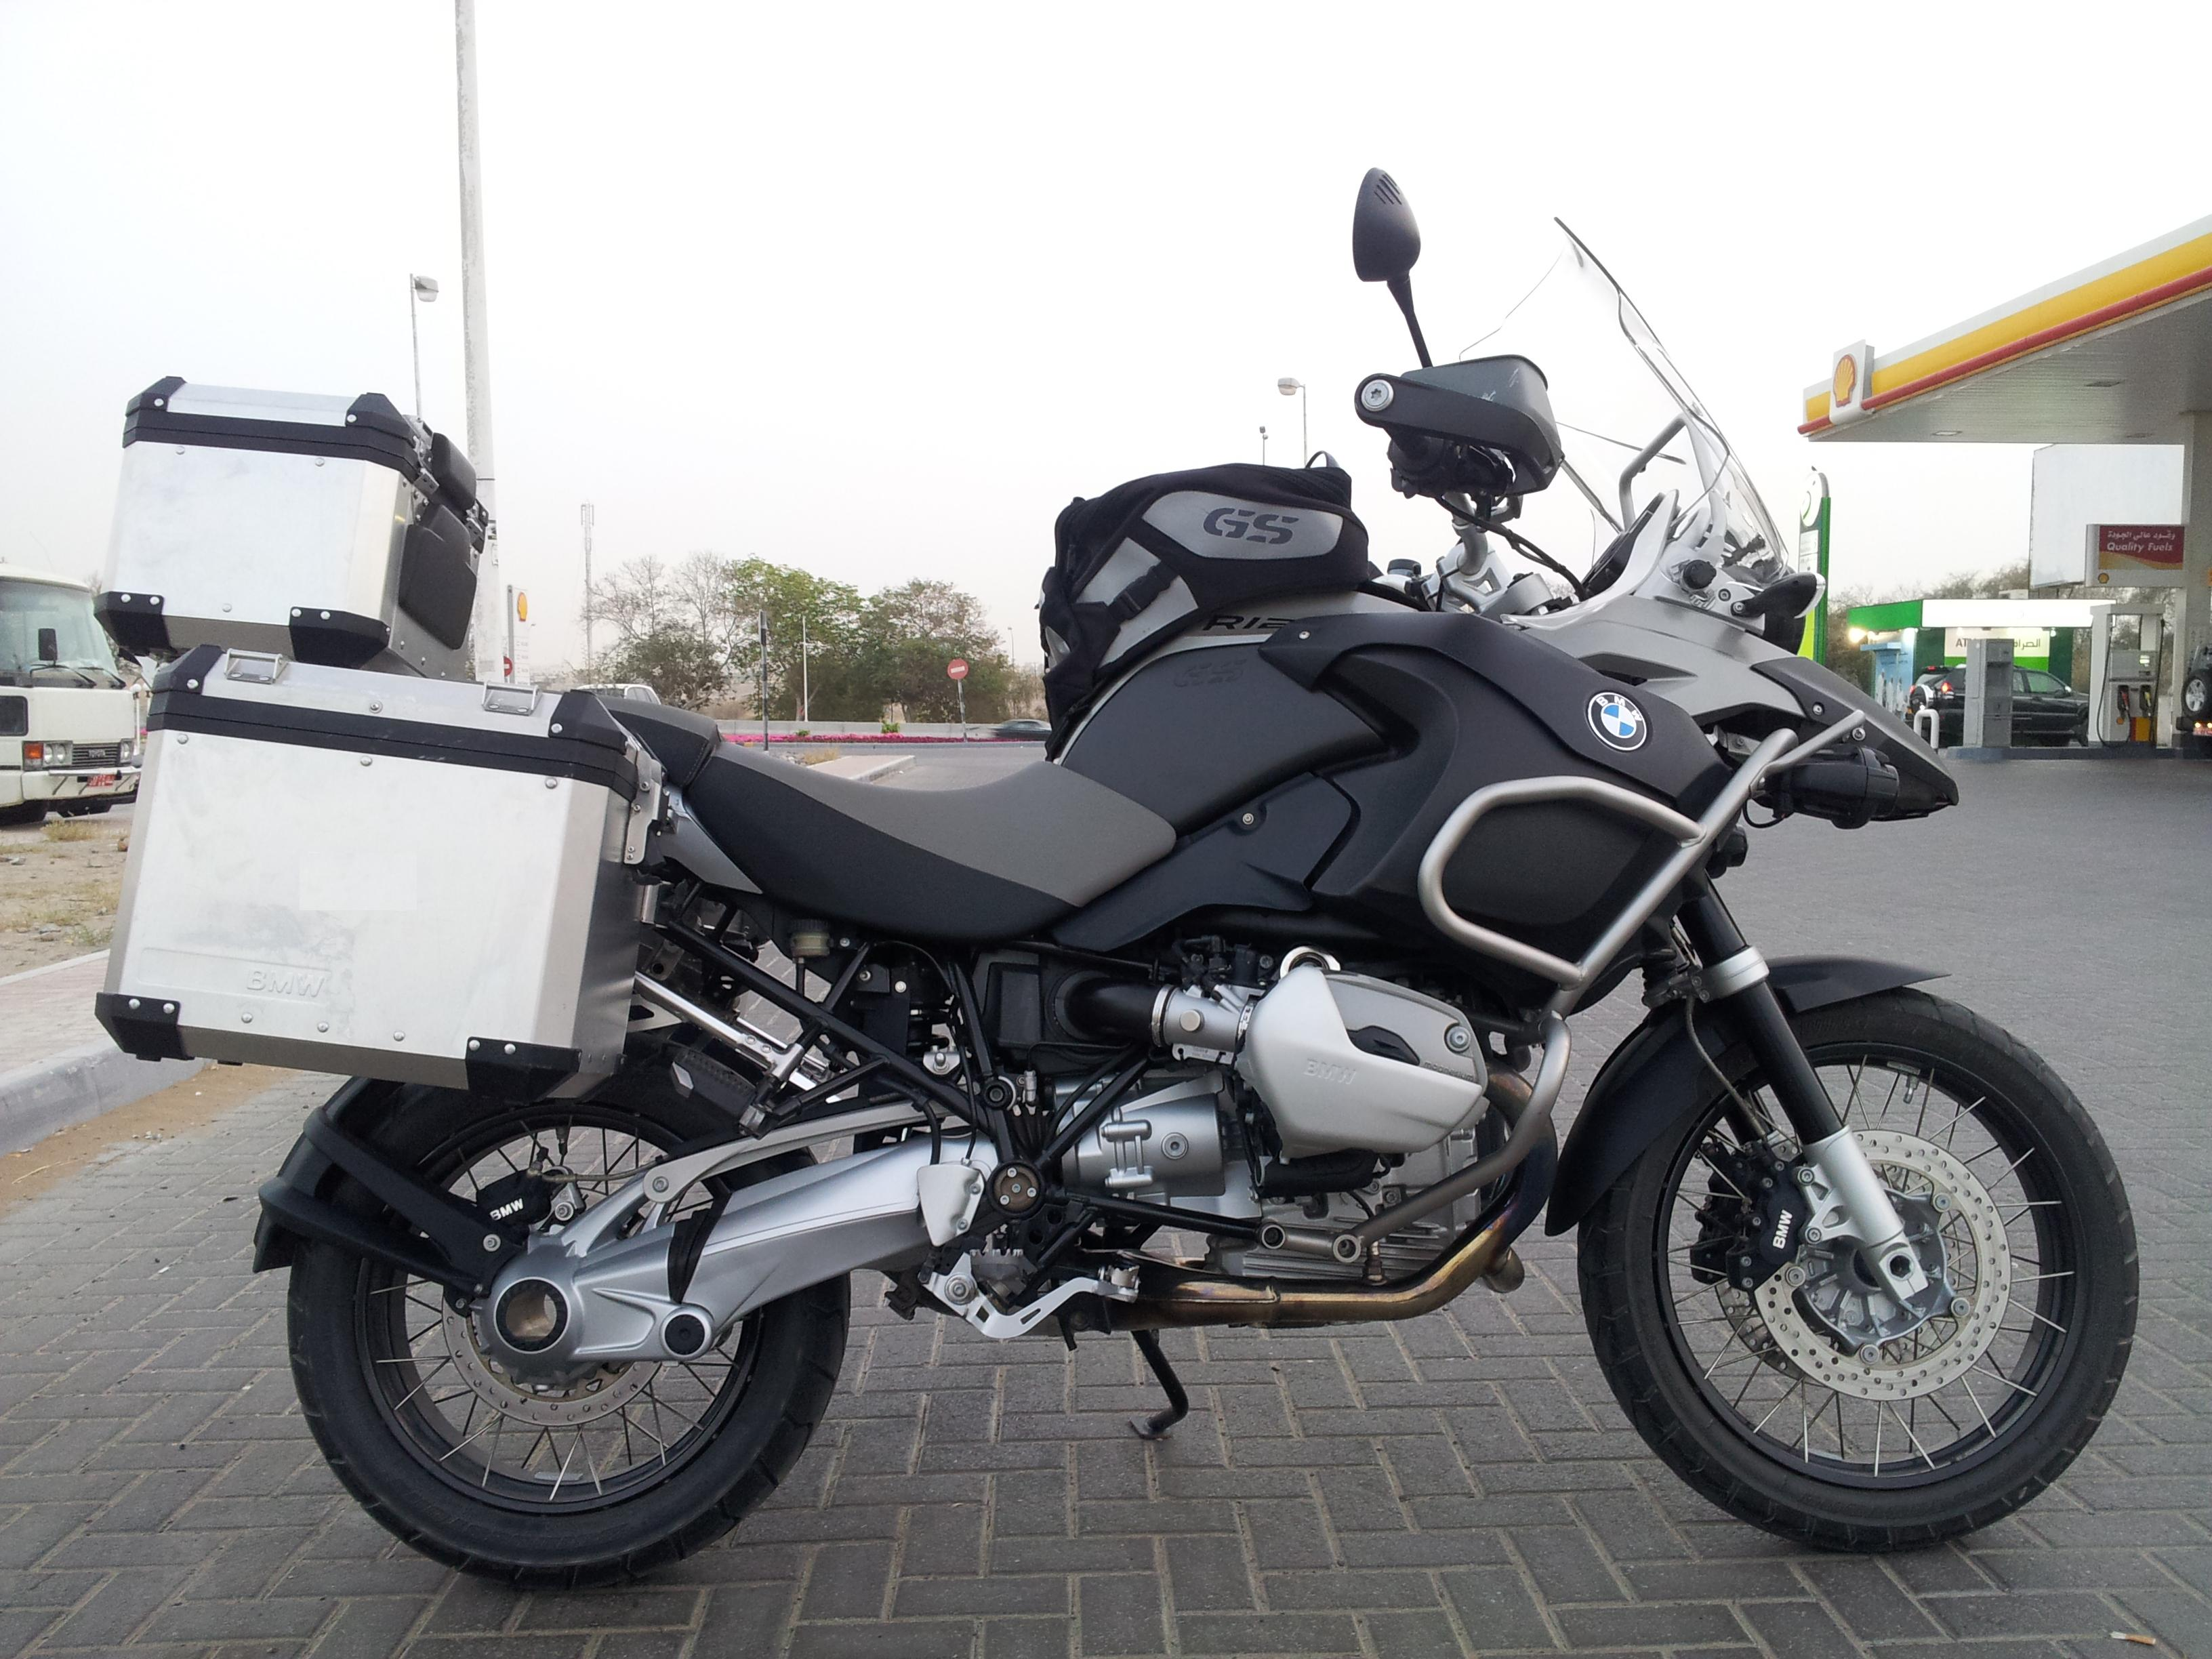 BMW R1200GS images #7968